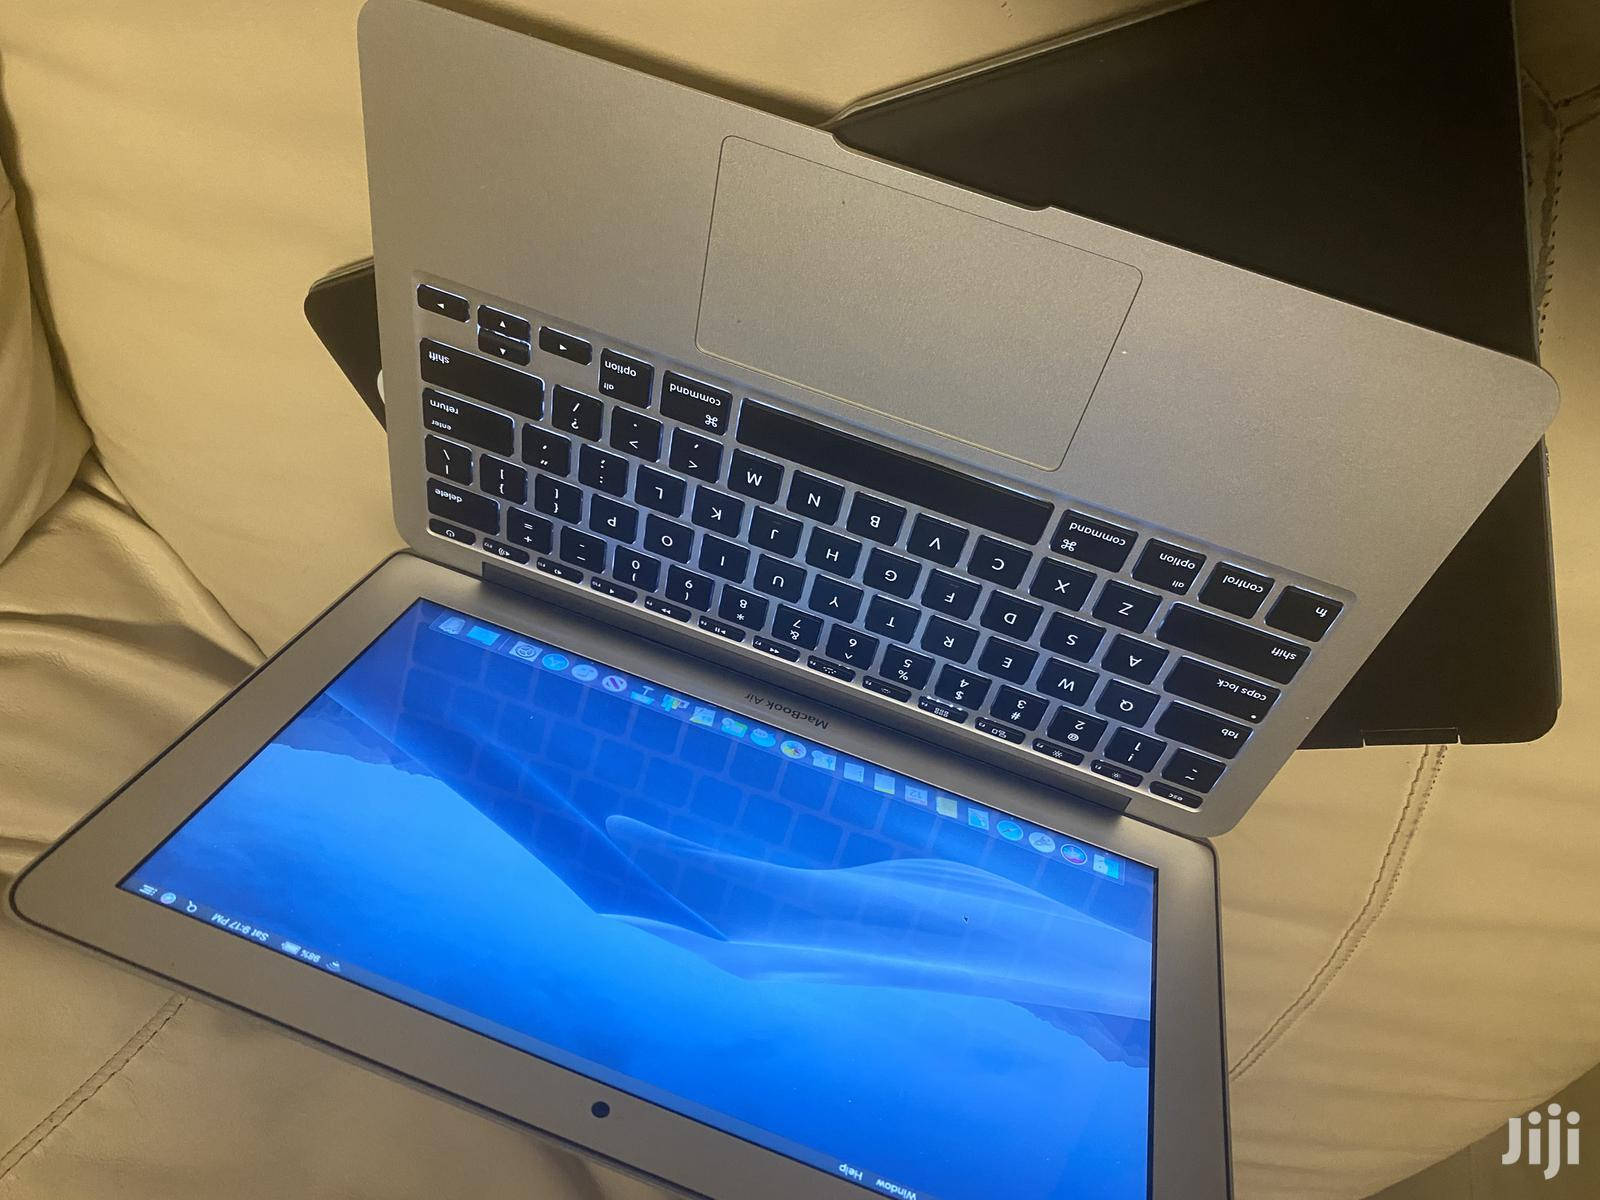 Laptop Apple MacBook Air 4GB Intel Core I5 SSD 128GB   Laptops & Computers for sale in Kokomlemle, Greater Accra, Ghana